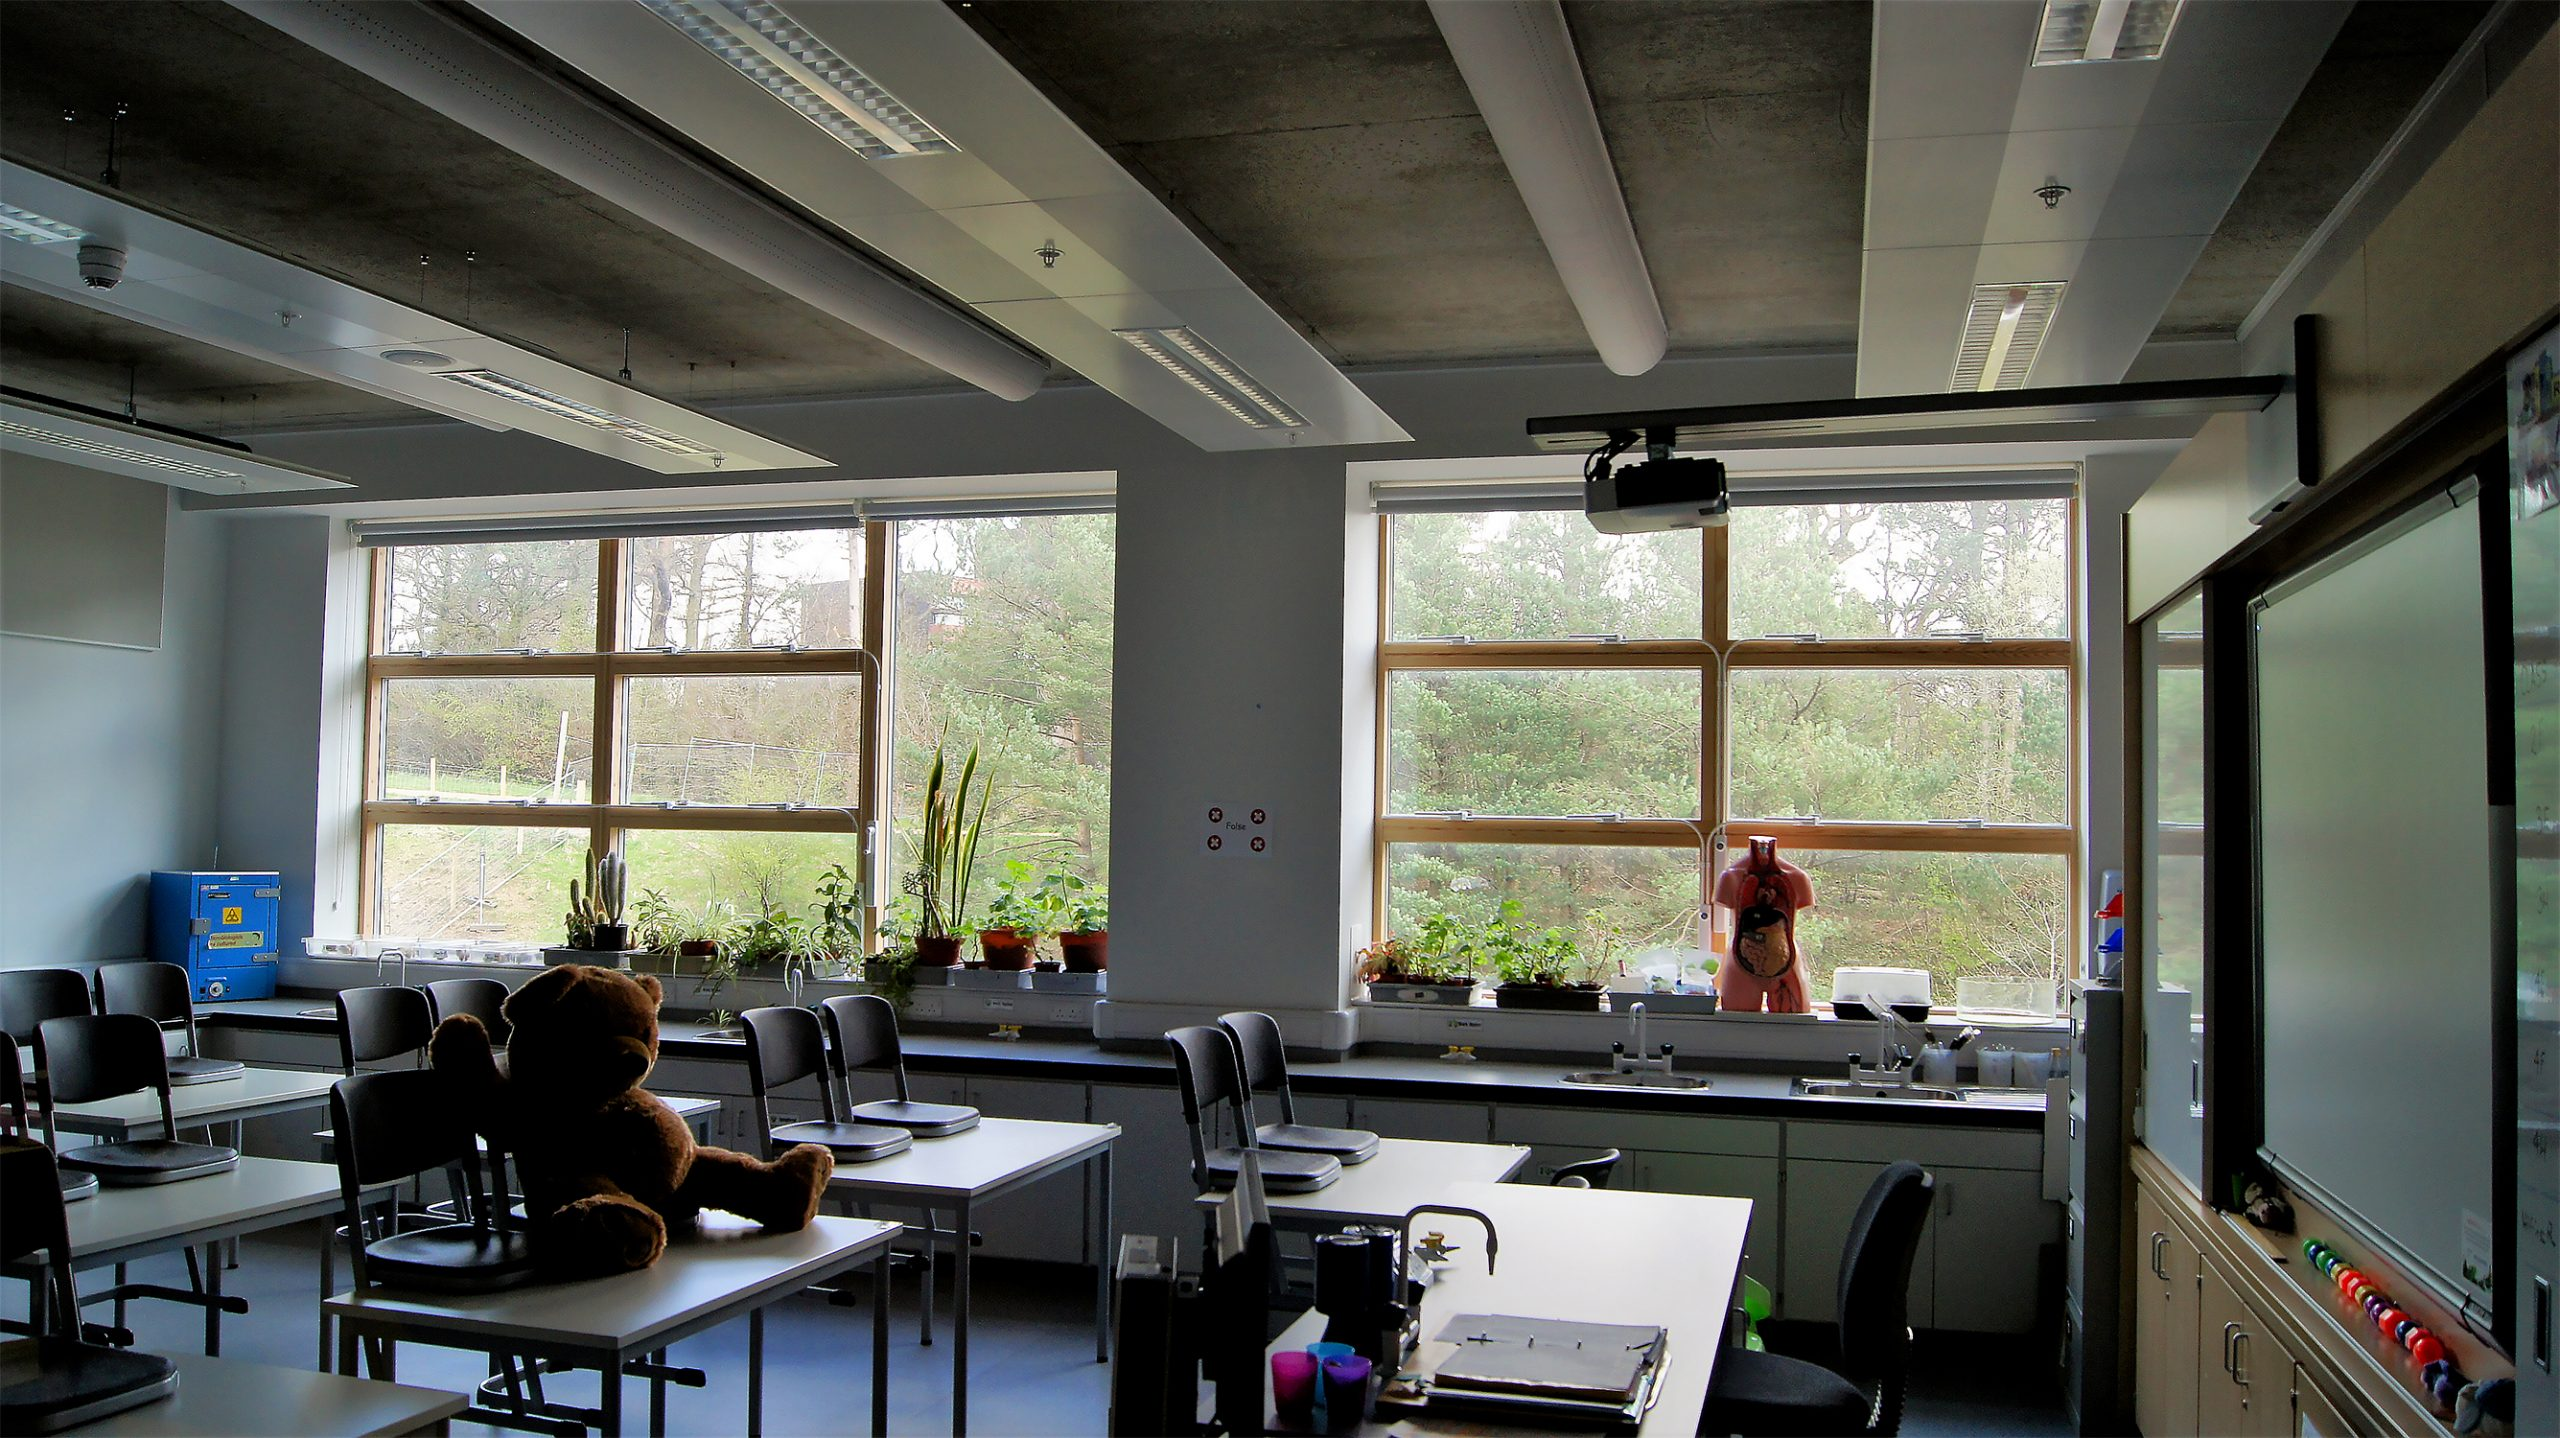 Science class with Prihoda fabric ducts at Eastwood High School